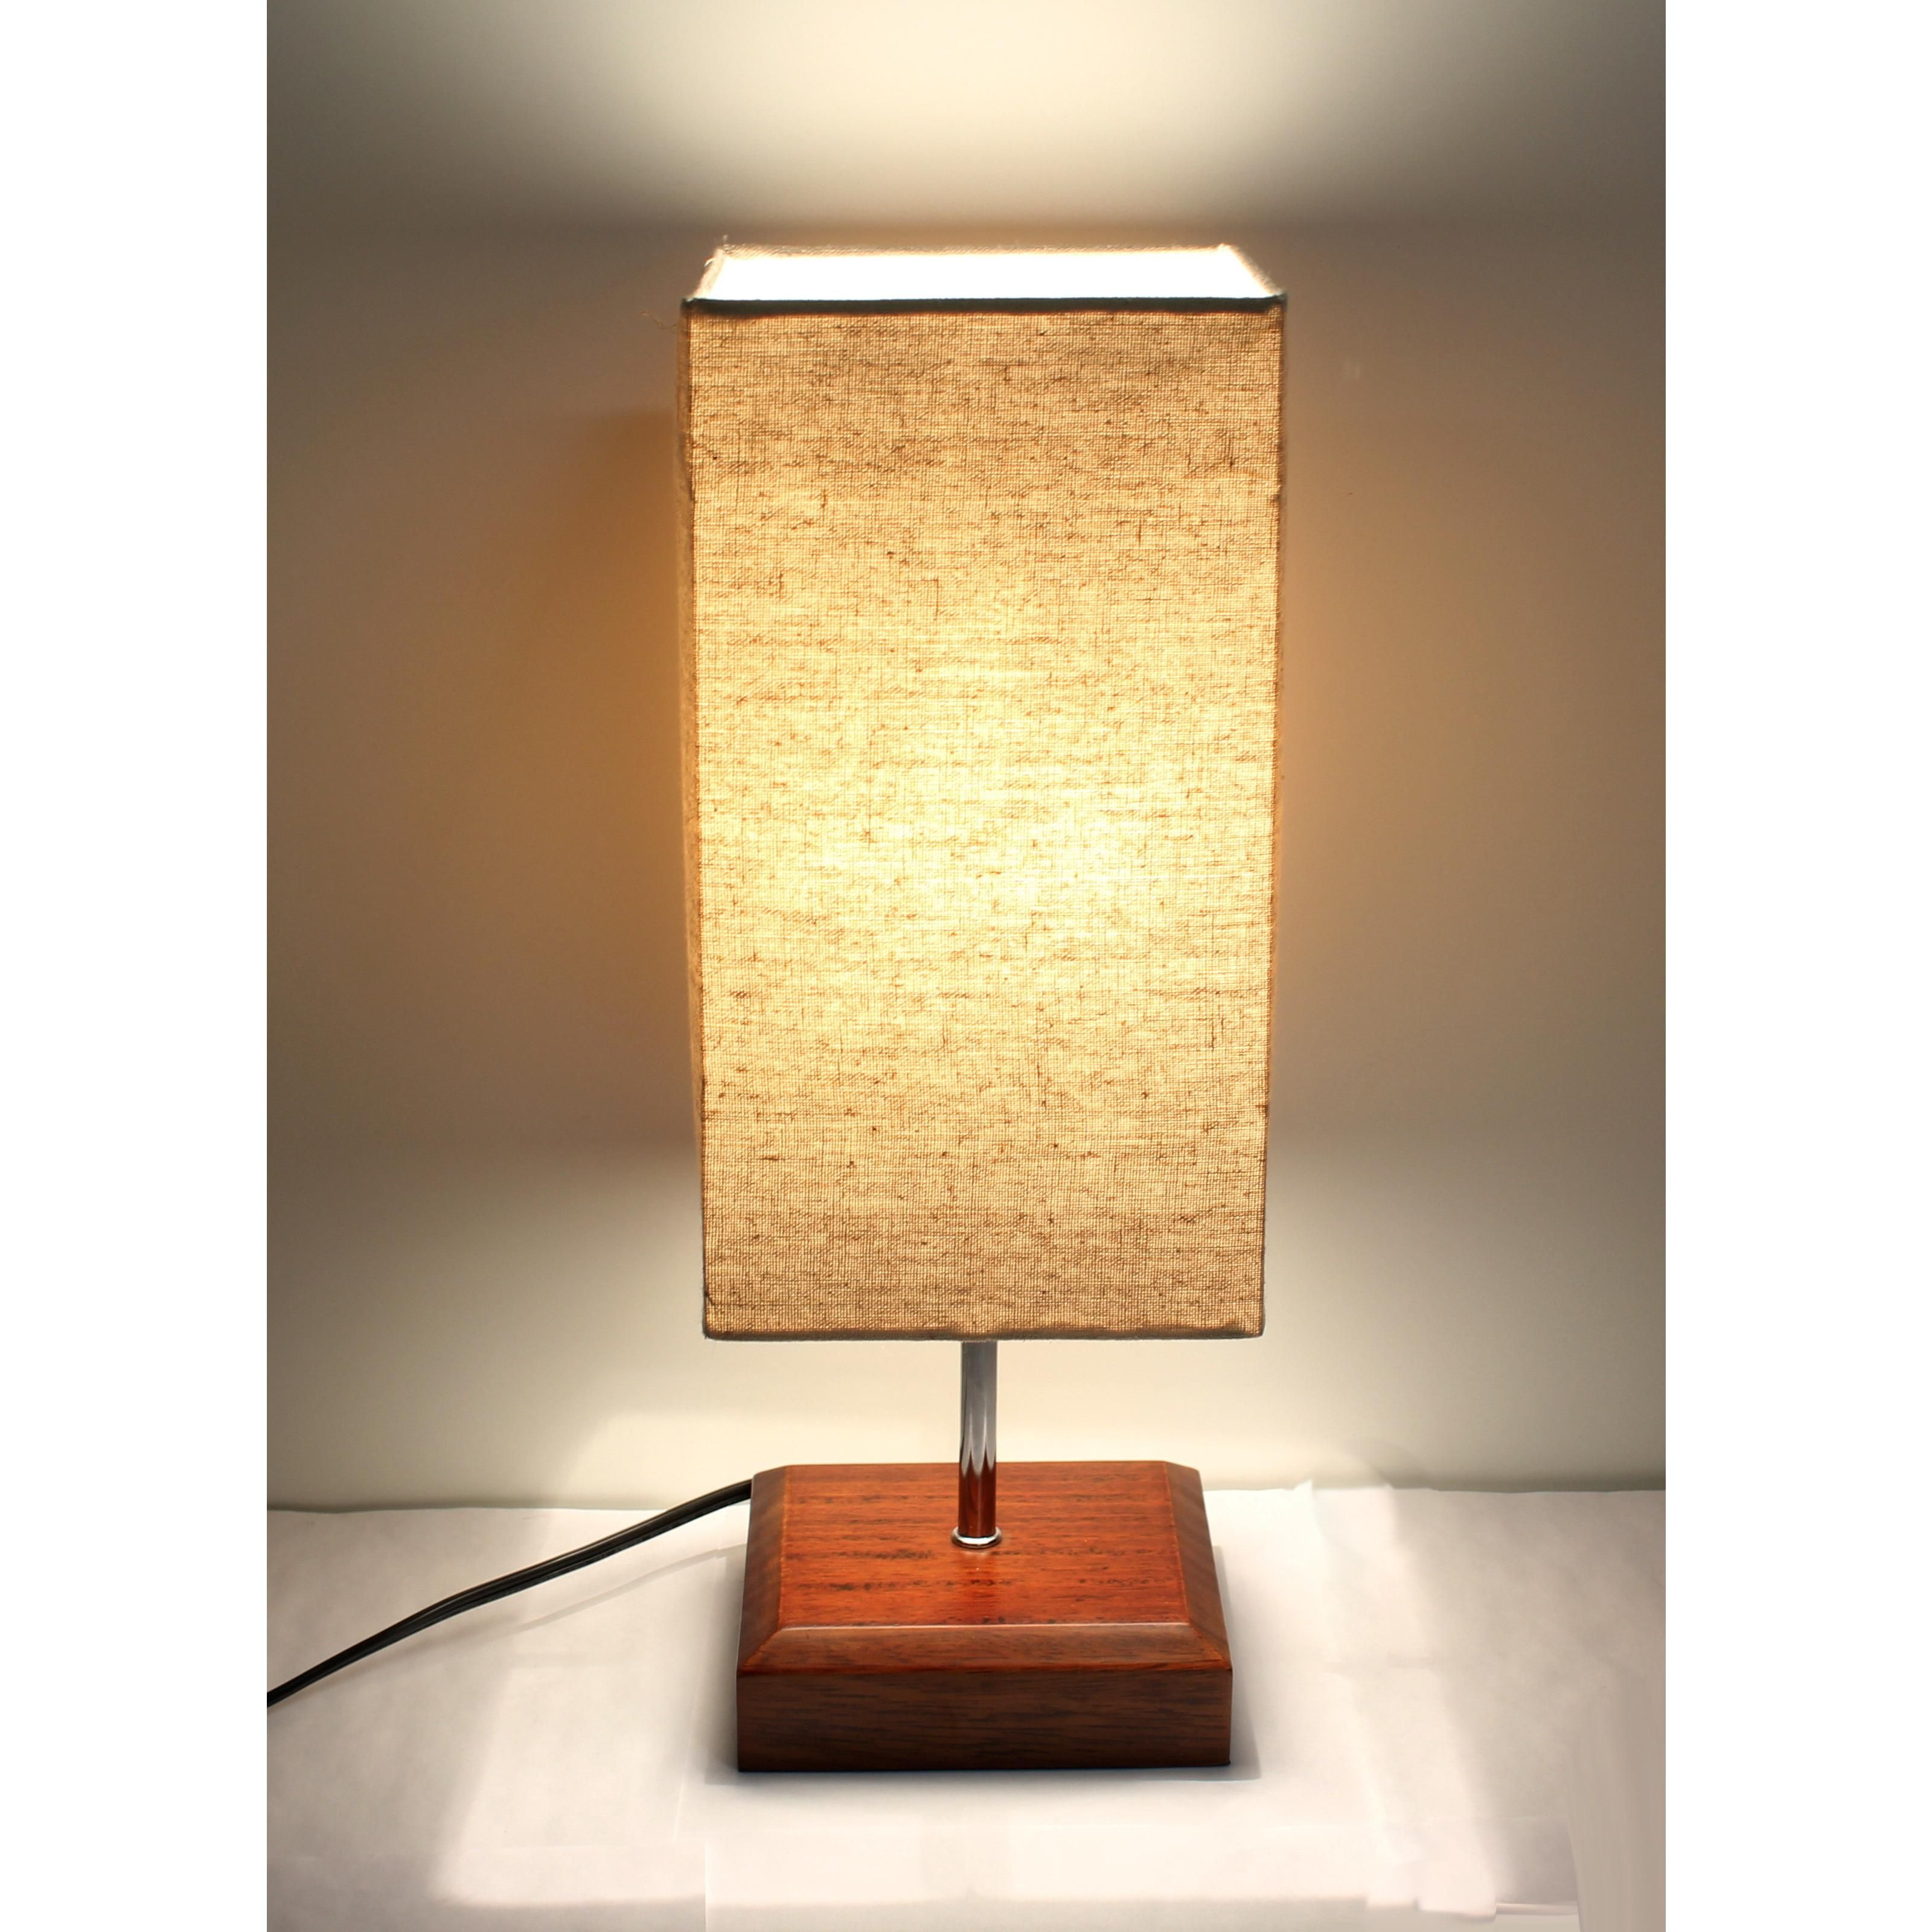 17 Square Wooden Minimalist Table Lamp Extra 10 Off When You Spend 15 Using Code Summer10 Rectangle Lamp Shade Wooden Table Lamps Table Lamp